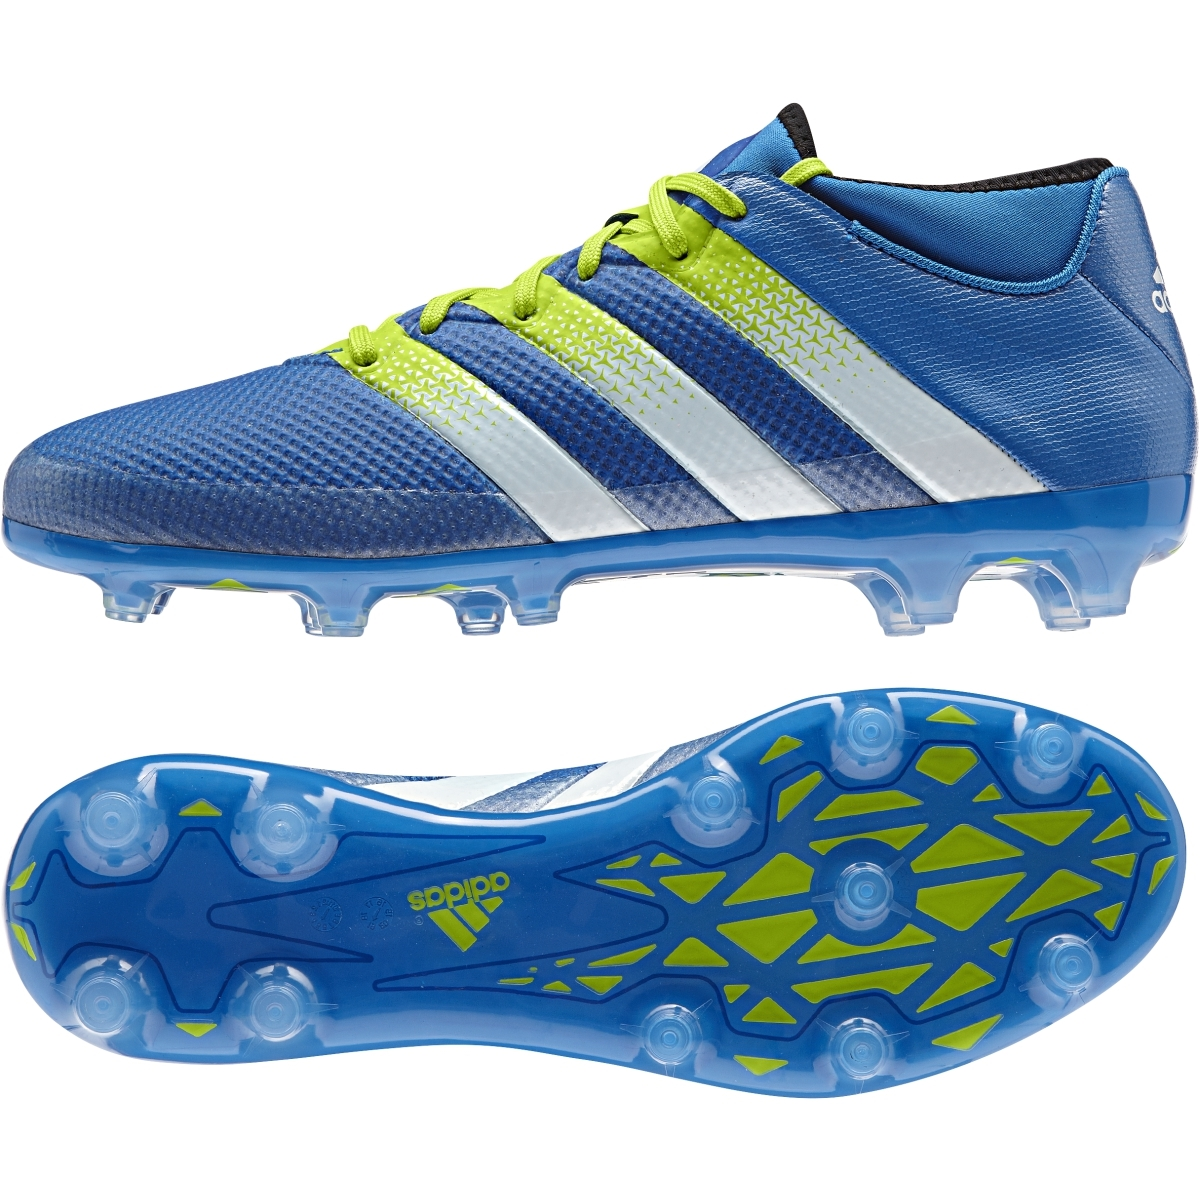 info for ca0a2 8f779 Adidas ACE 16.2 Primemesh FG Soccer Cleats (Shock Blue/Semi Solar Slime)